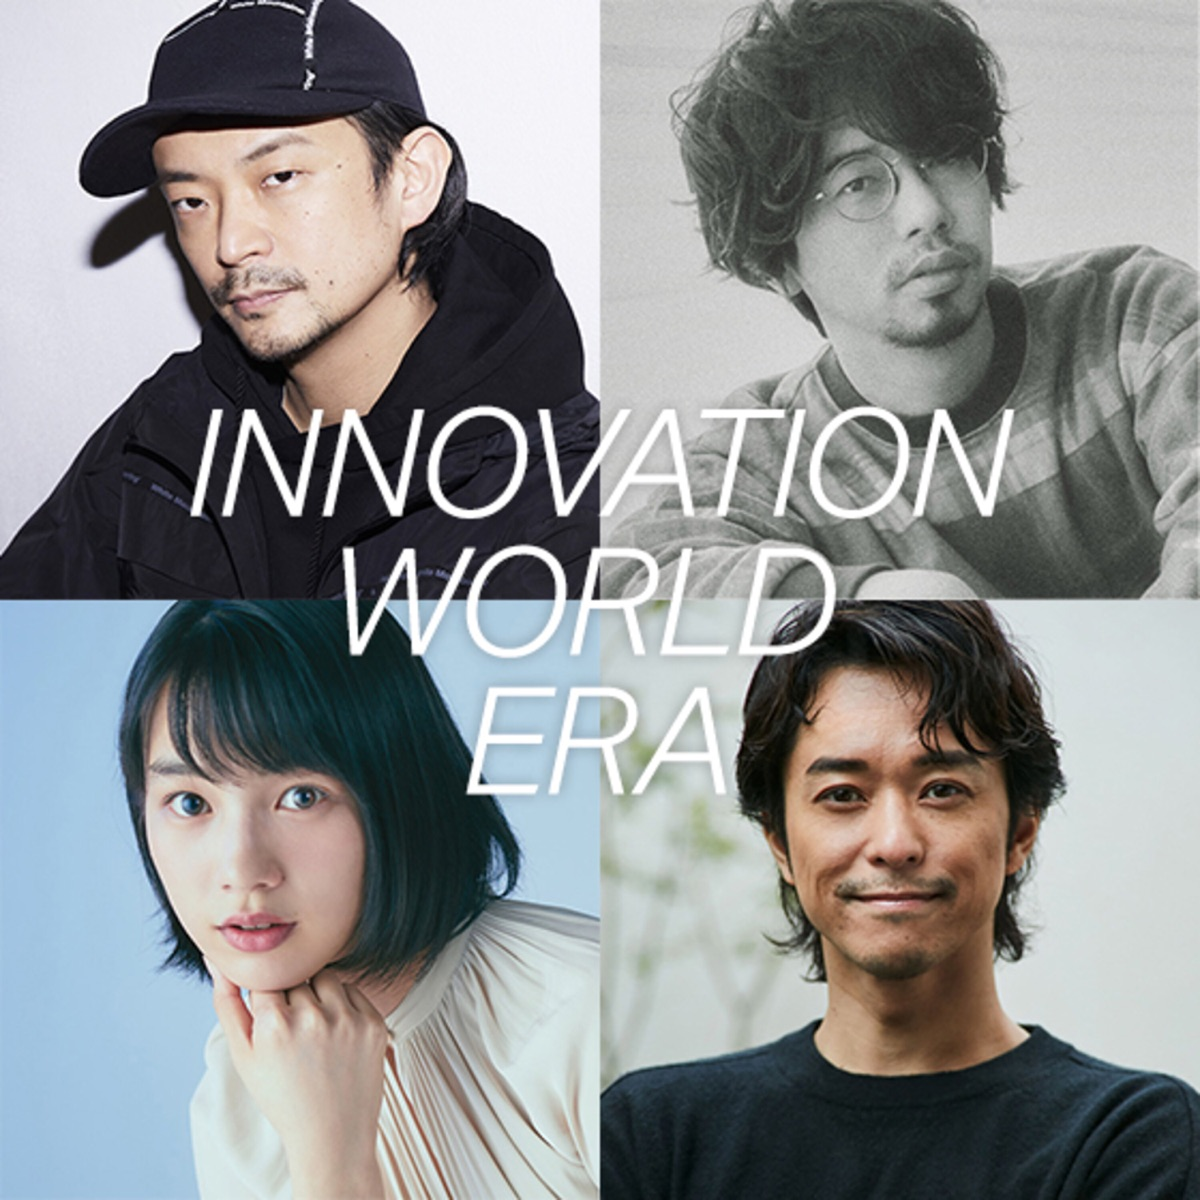 J-WAVE INNOVATION WORLD ERA